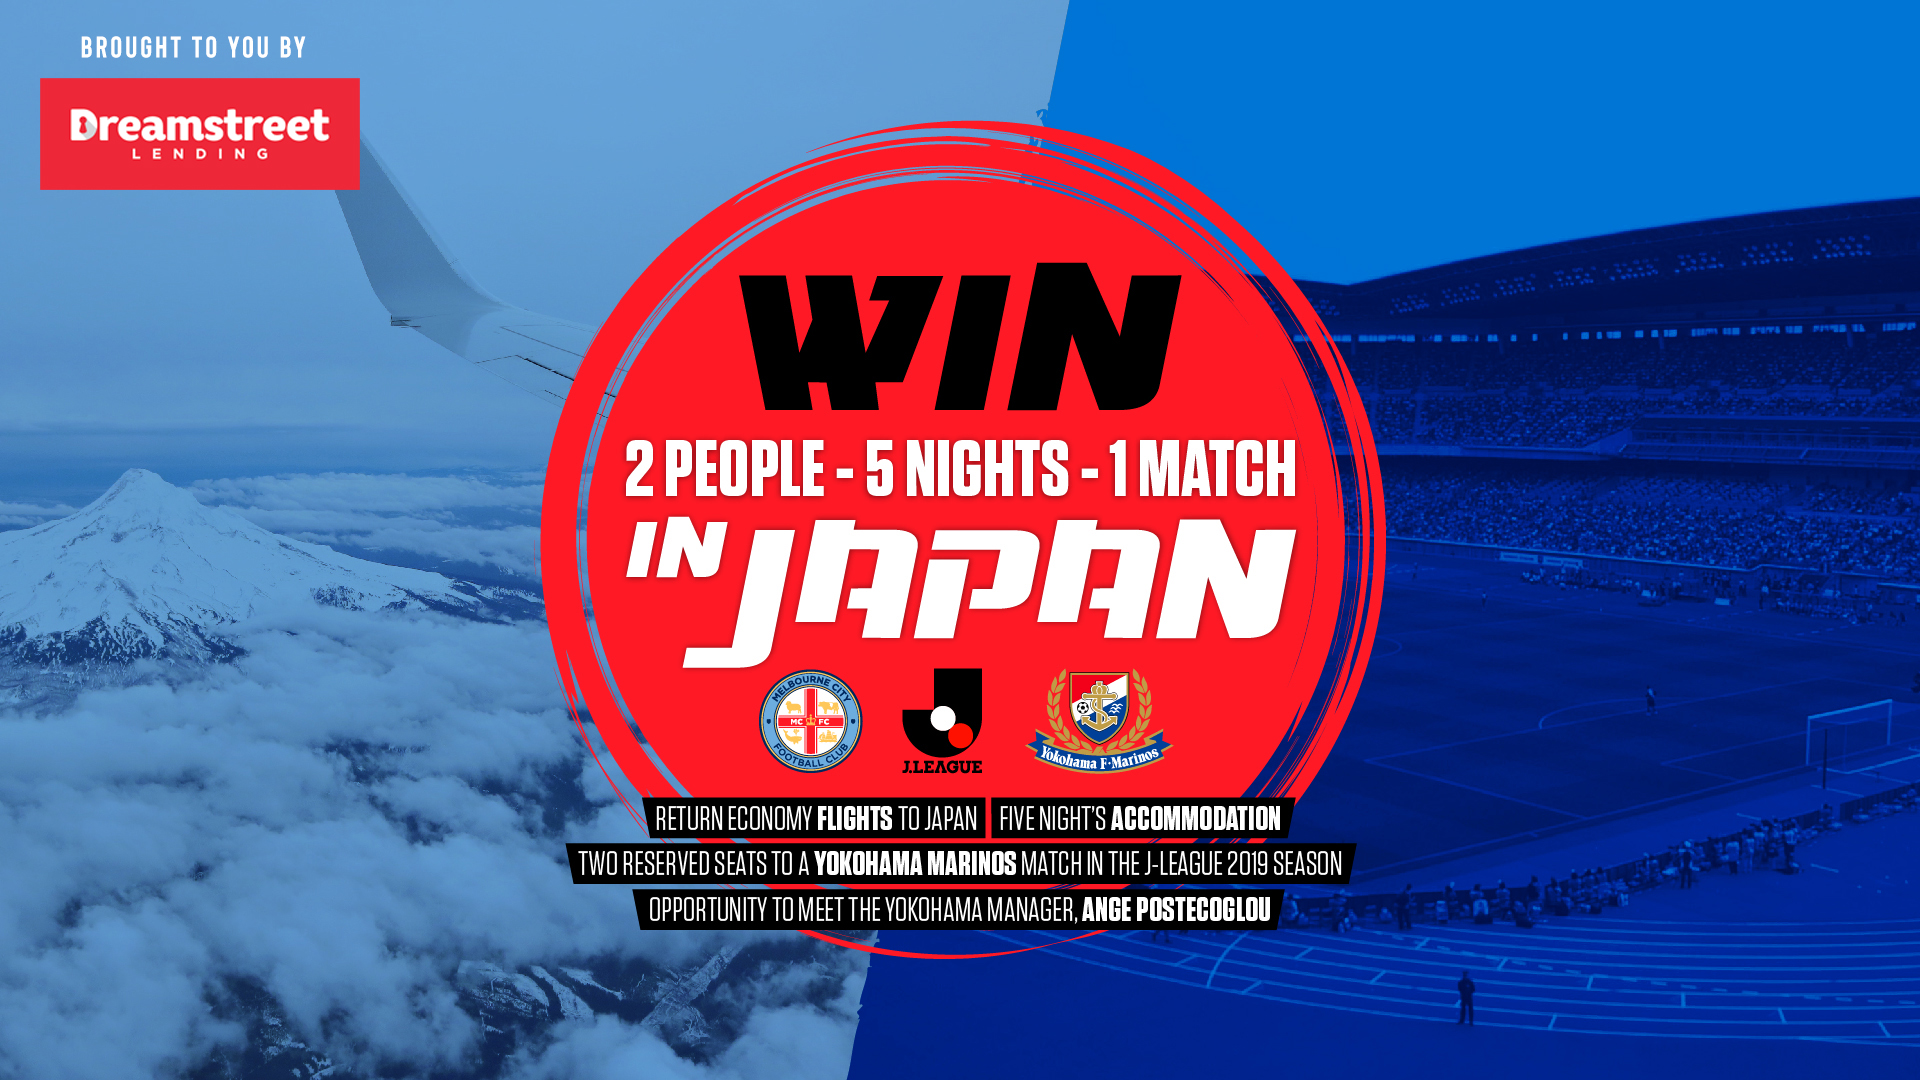 WIN A TRIP TO JAPAN, WITH THANKS TO DREAMSTREET LENDING